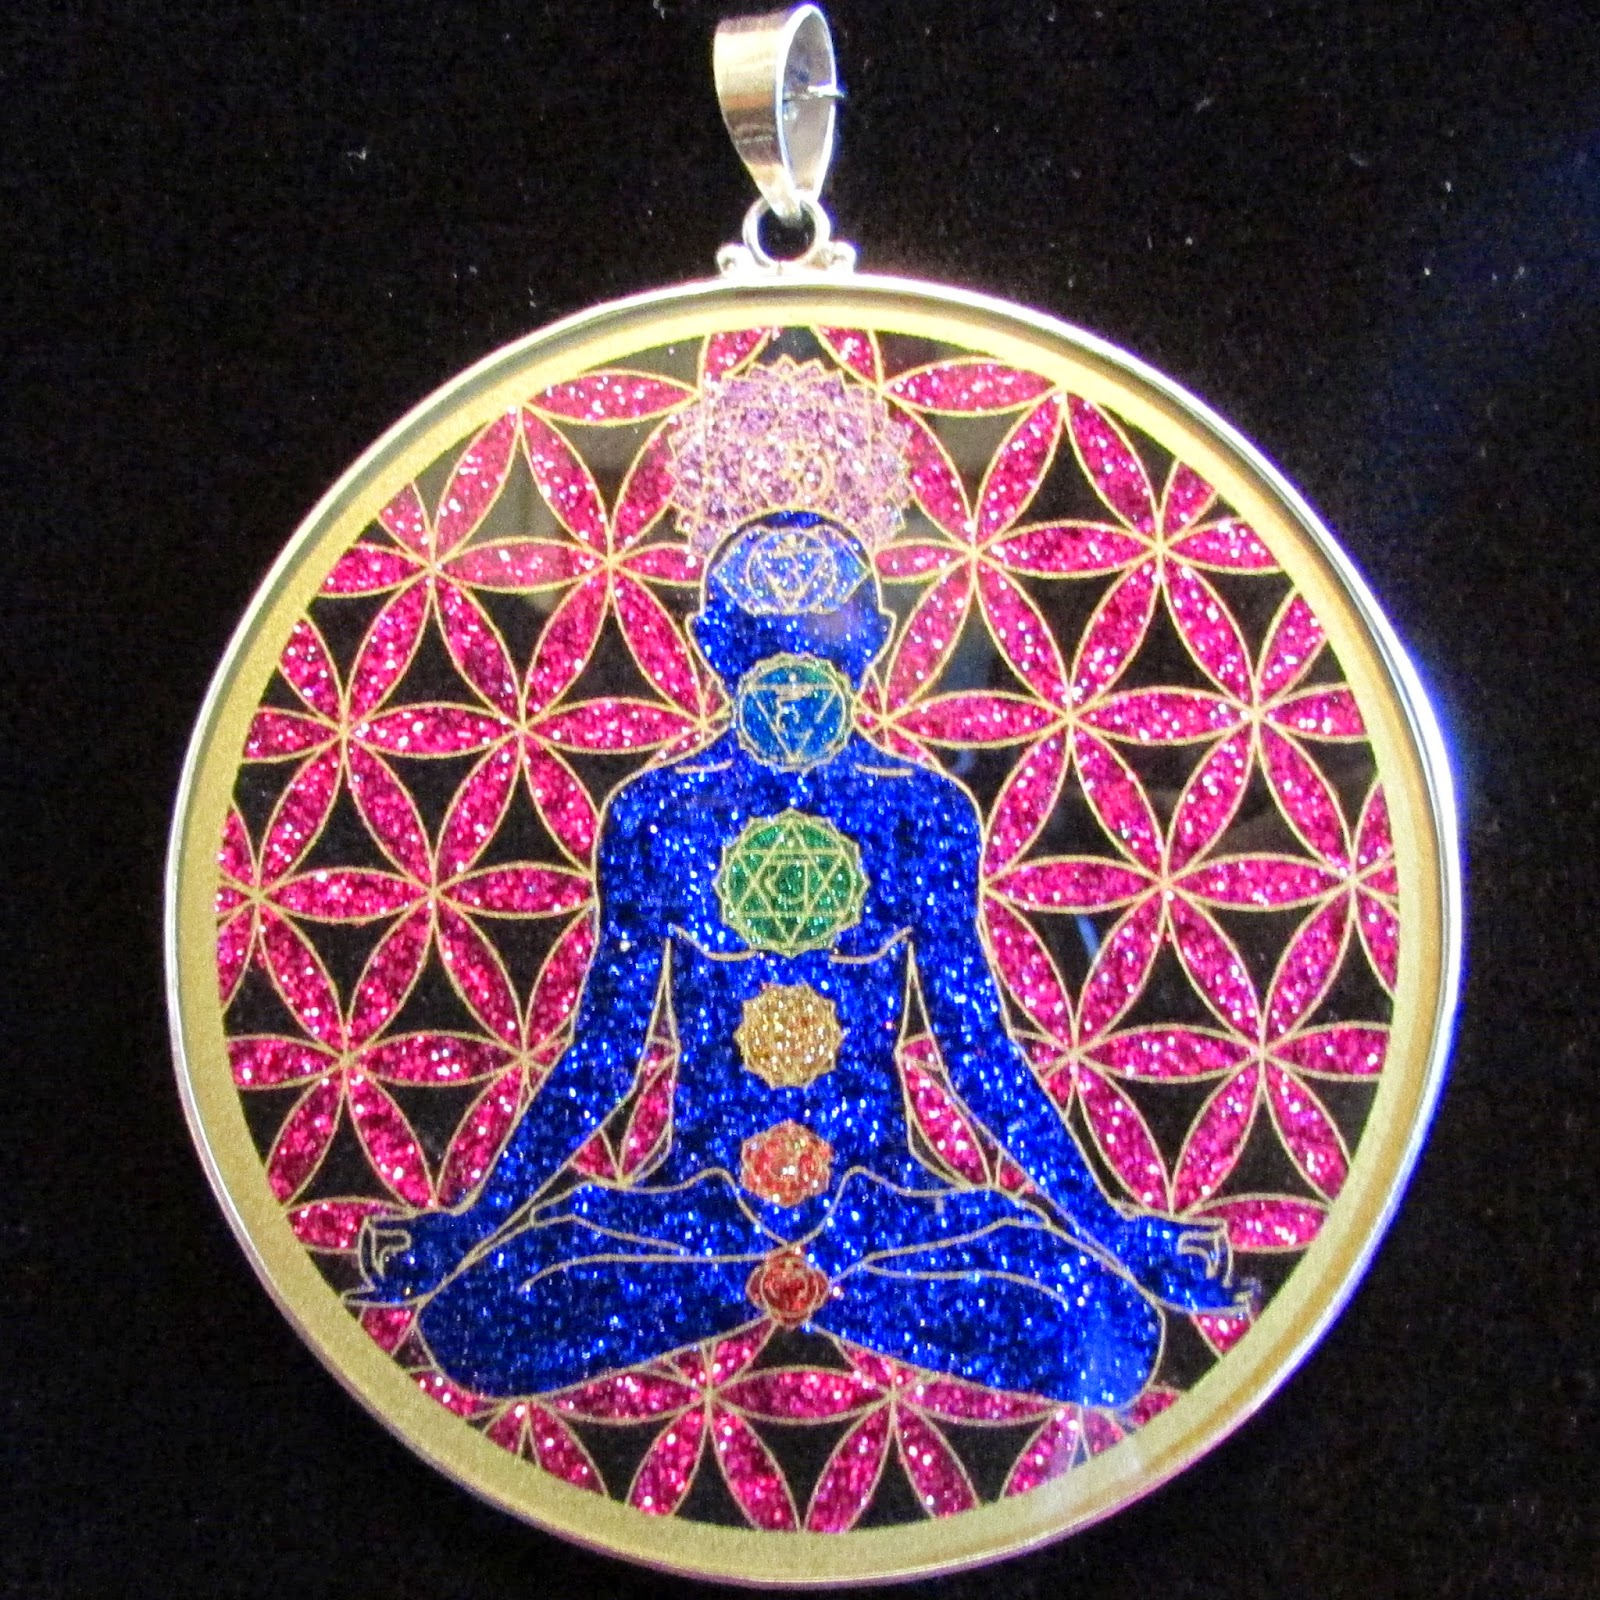 Sacred geometry pendants pendant store these extra large 3 inch pendants are available in the following designs chakra man flower of life merkaba in flower of life metatrons cube mozeypictures Gallery